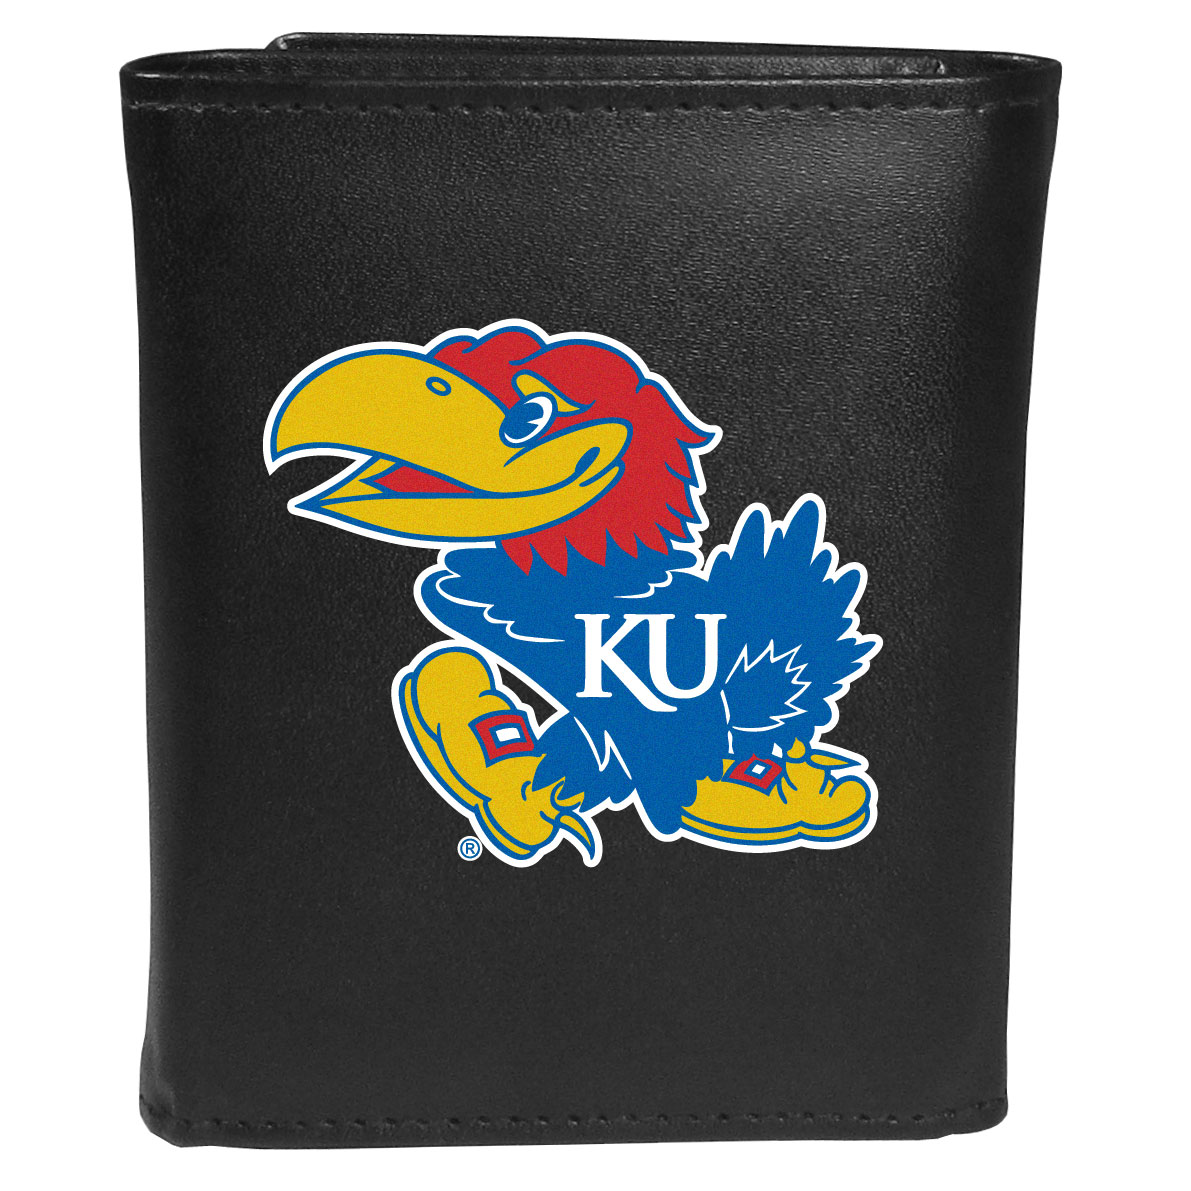 Kansas Jayhawks Leather Tri-fold Wallet, Large Logo - Our classic fine leather tri-fold wallet is meticulously crafted with genuine leather that will age beautifully so you will have a quality wallet for years to come. This is fan apparel at its finest. The wallet is packed with organizational  features; lots of credit card slots, large billfold pocket, and a window ID slot. The front of the wallet features an extra large Kansas Jayhawks printed logo.